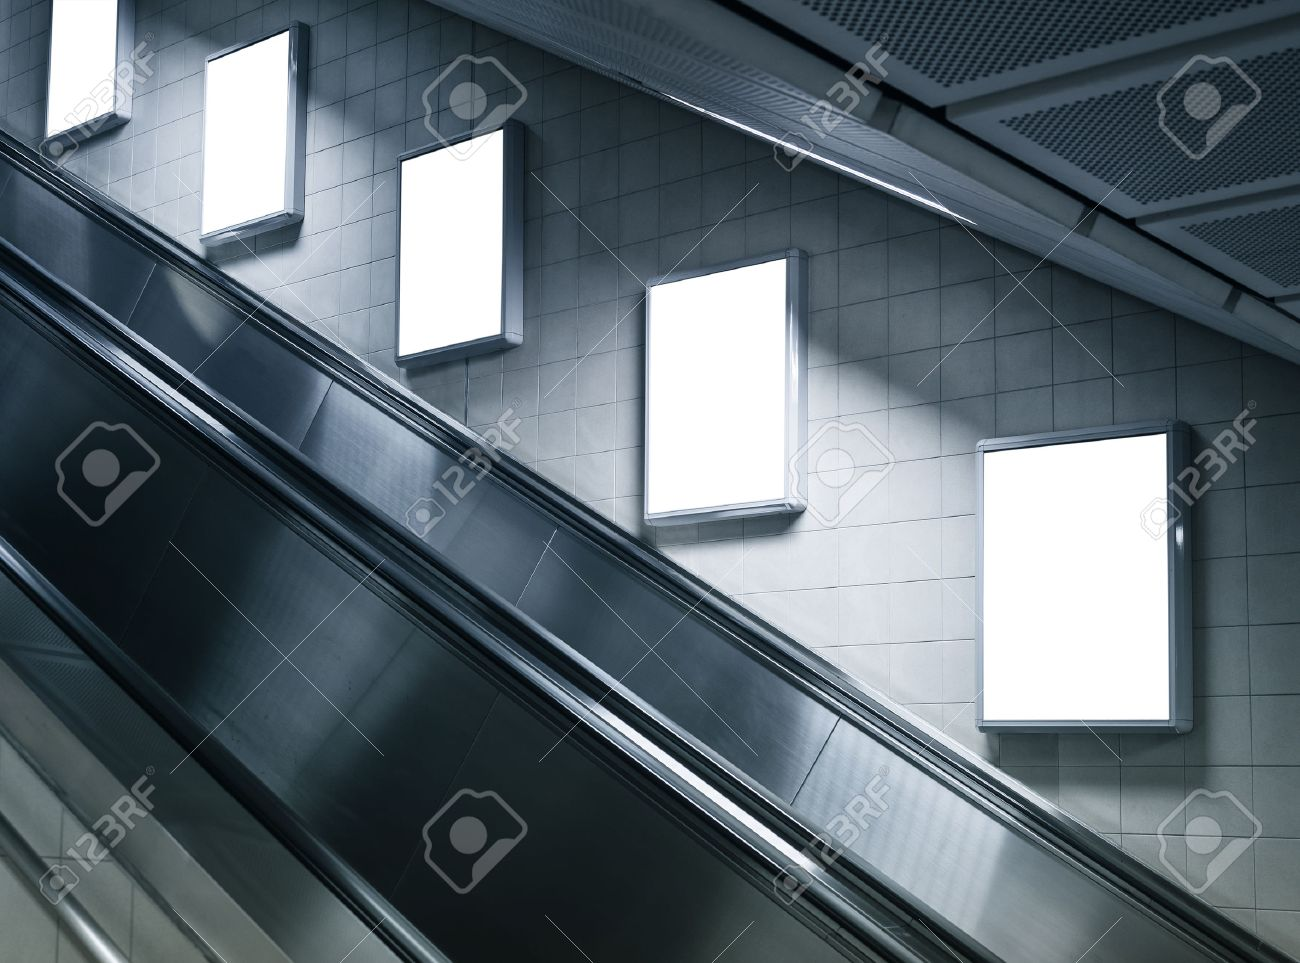 Mock Up Poster Ads At Escalator Side In Subway Station Stock Photo